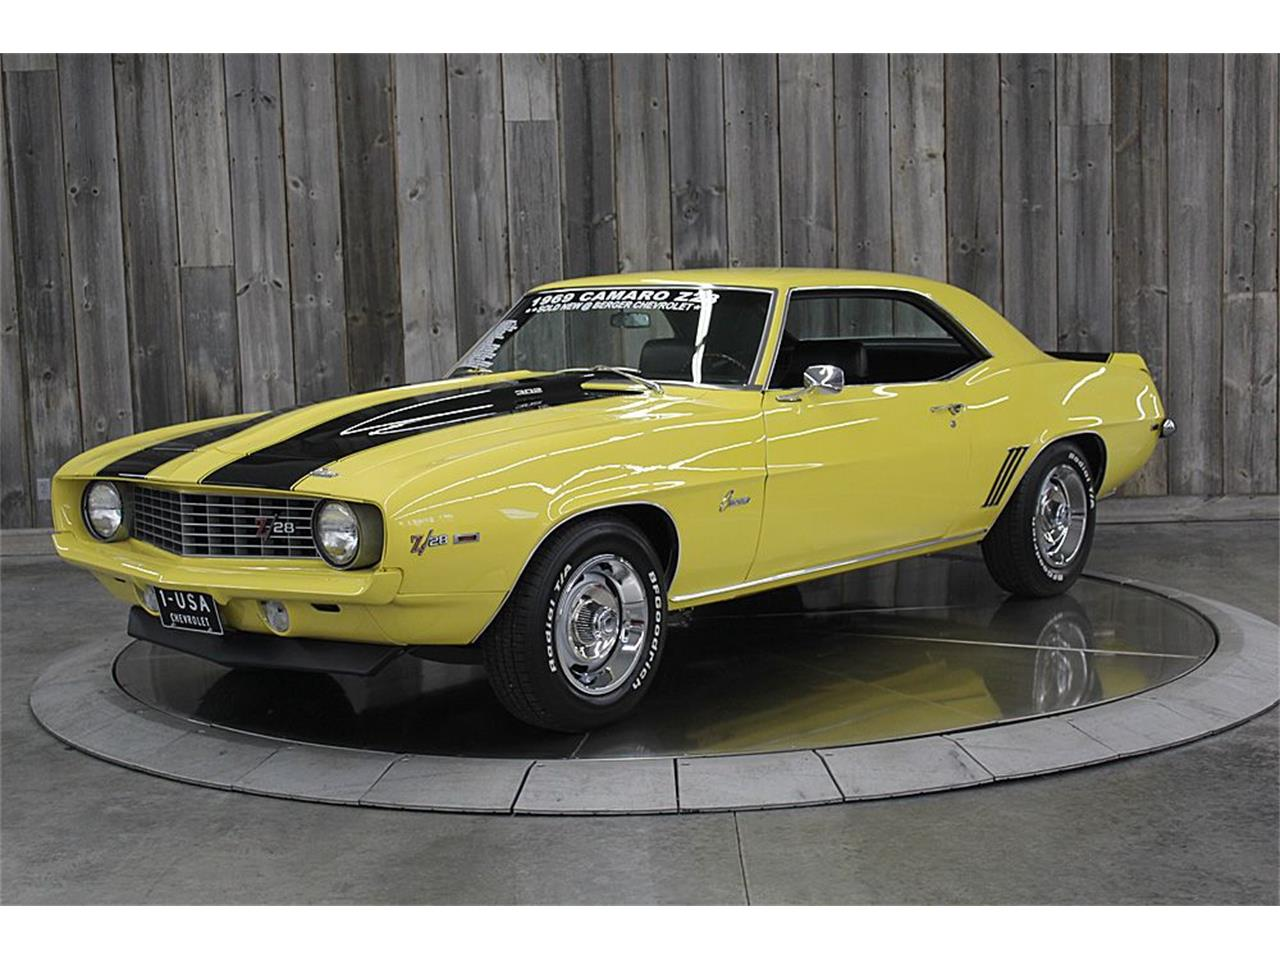 for sale 1969 chevrolet camaro z28 in bettendorf, iowa cars - bettendorf, ia at geebo